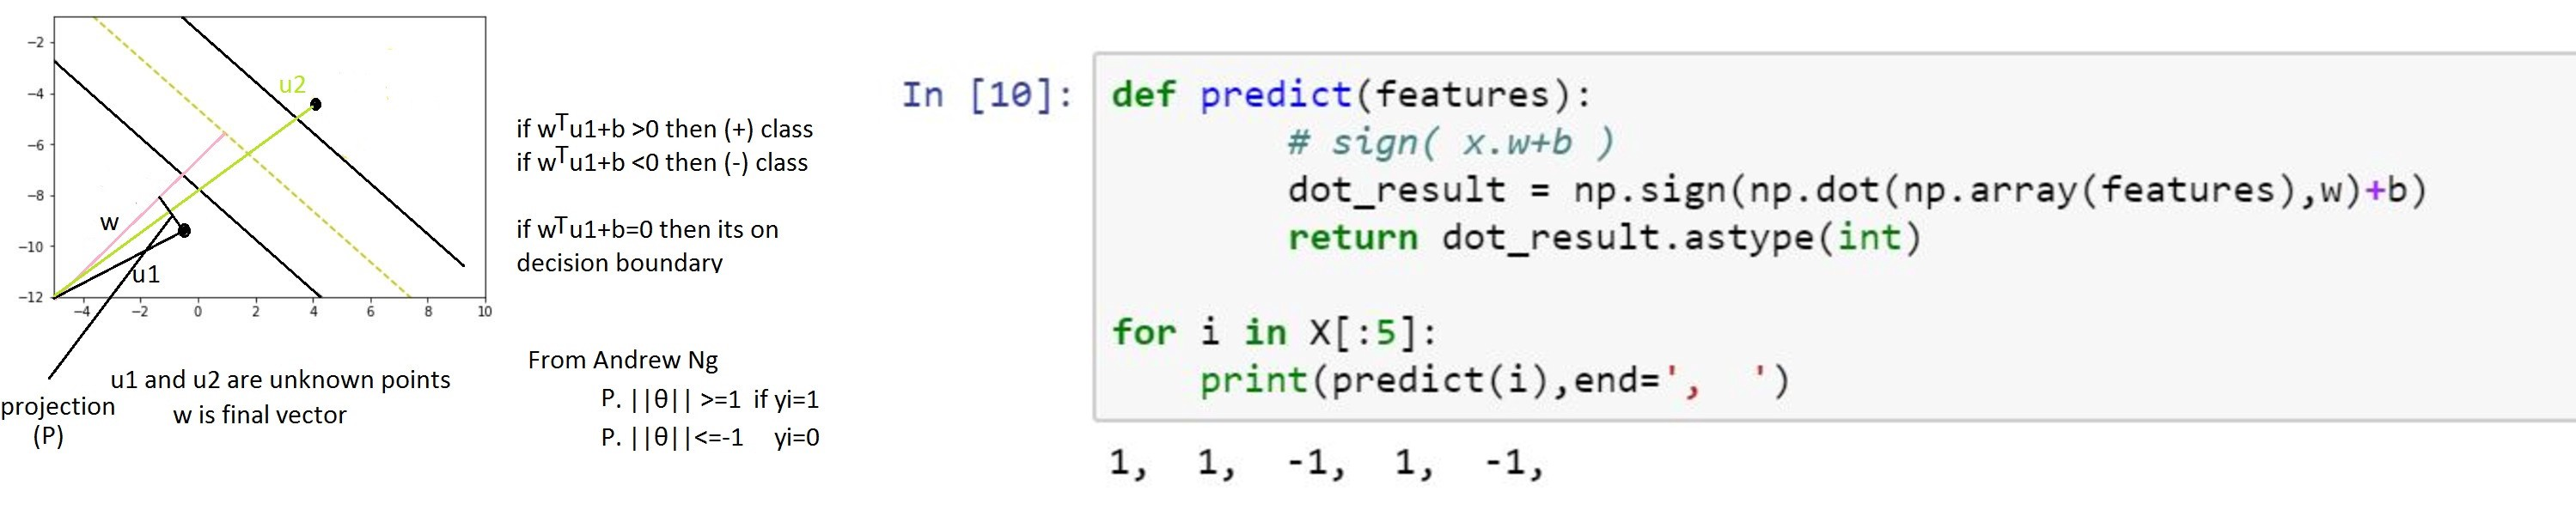 Chapter 3 1 : SVM from Scratch in Python  - Deep Math